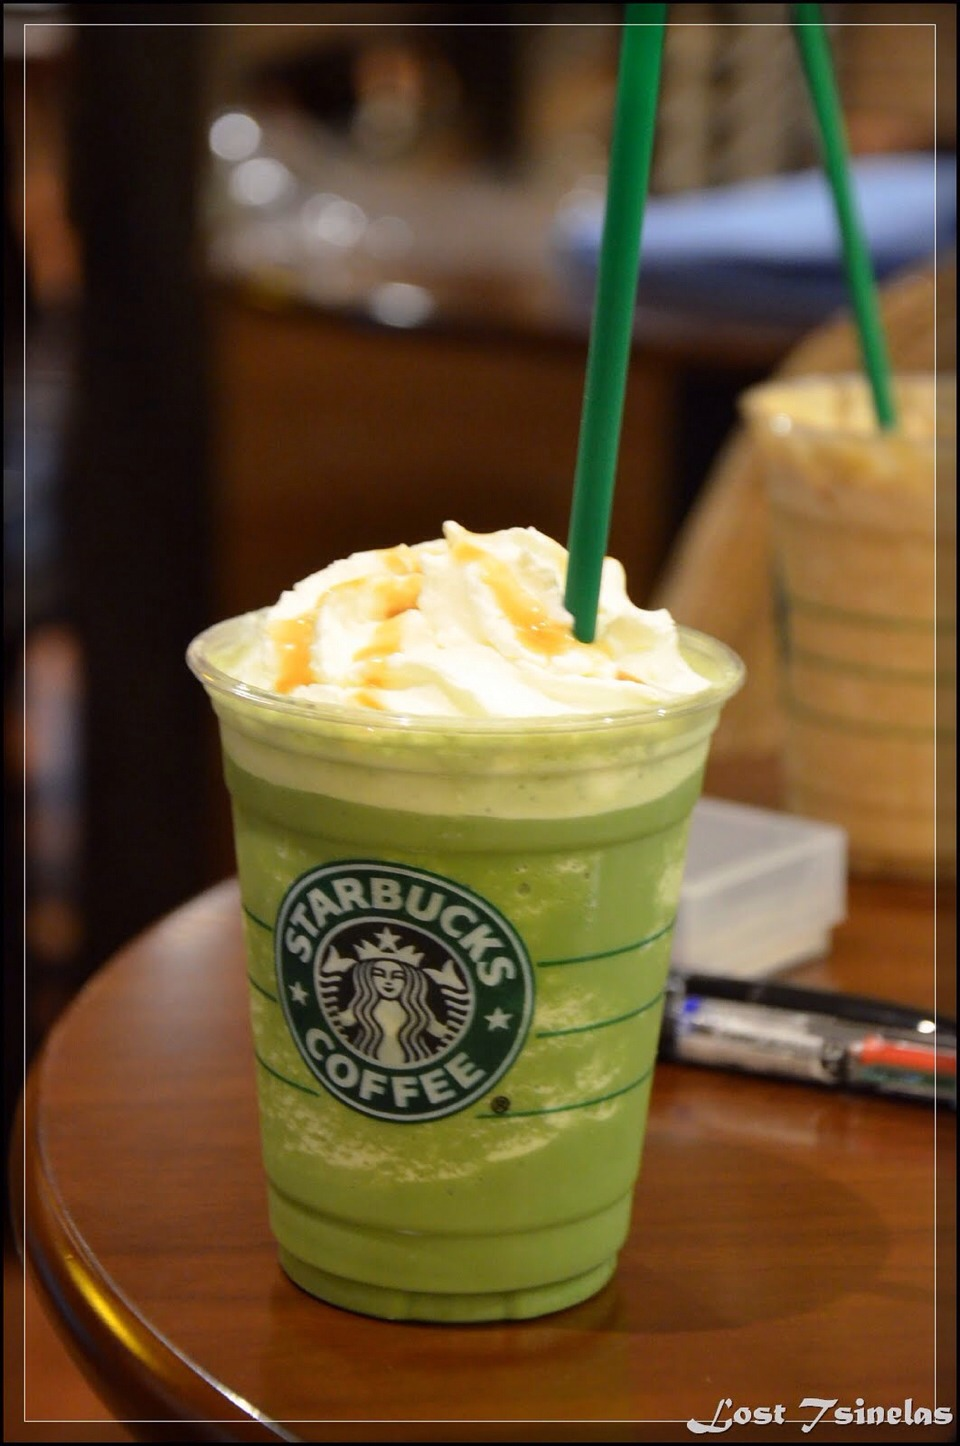 Pistacho ice cream frap recipe!!!!  Ask for:  No classic syrup Pumps of hazelnut(1 for tall, 2 for grande, 3 for venti) Pumps of toffe nut (1 for tall, 2 for grande, 3 for venti)  Enjoy!!!!!